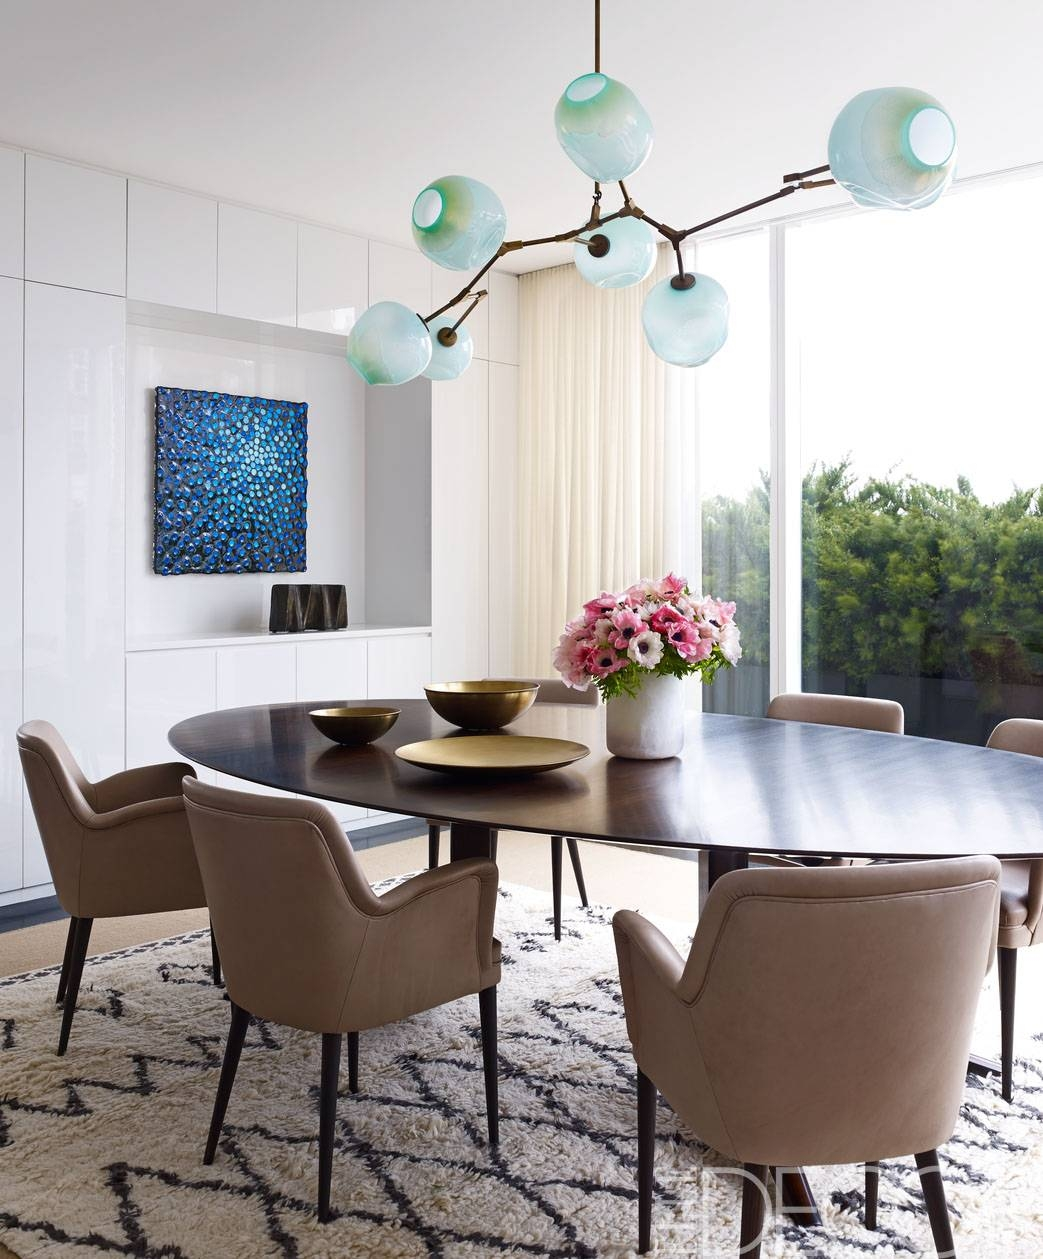 25 Modern Dining Room Decorating Ideas – Contemporary Dining Room Regarding Recent Modern Wall Art For Dining Room (View 3 of 15)